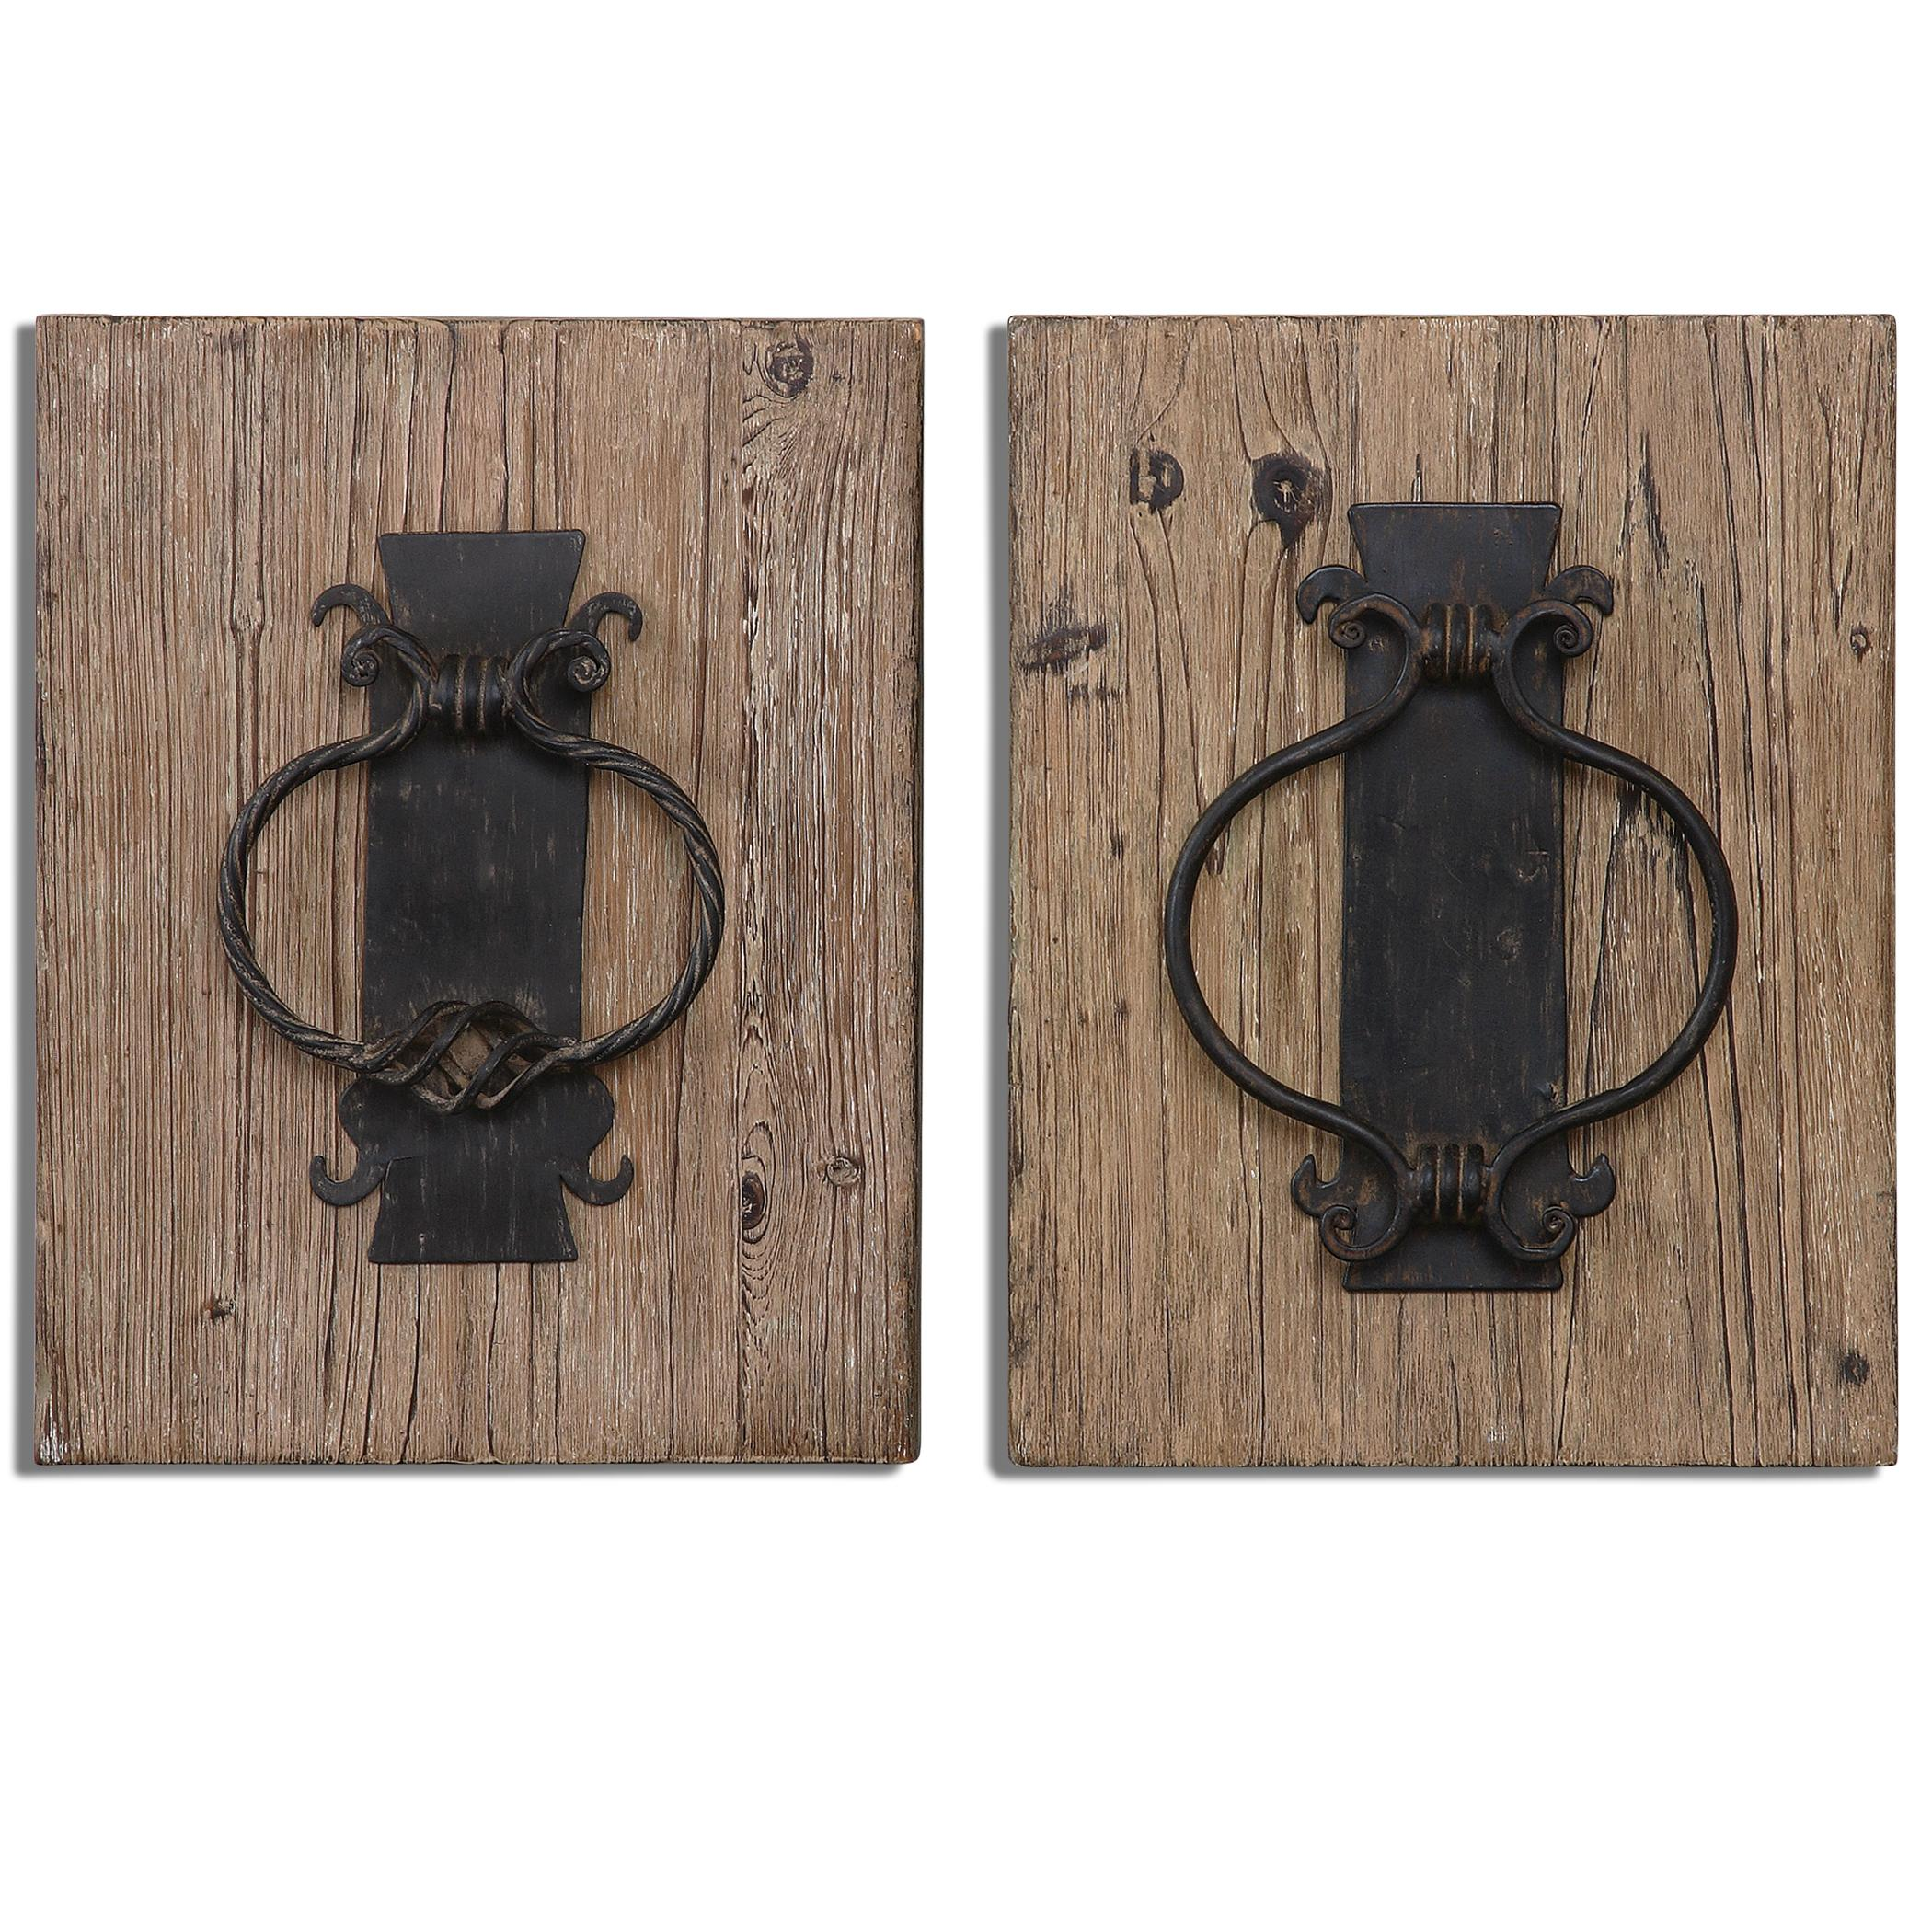 Rustic Door Knockers Uttermost Alternative Wall Decor 07654 Rustic Door